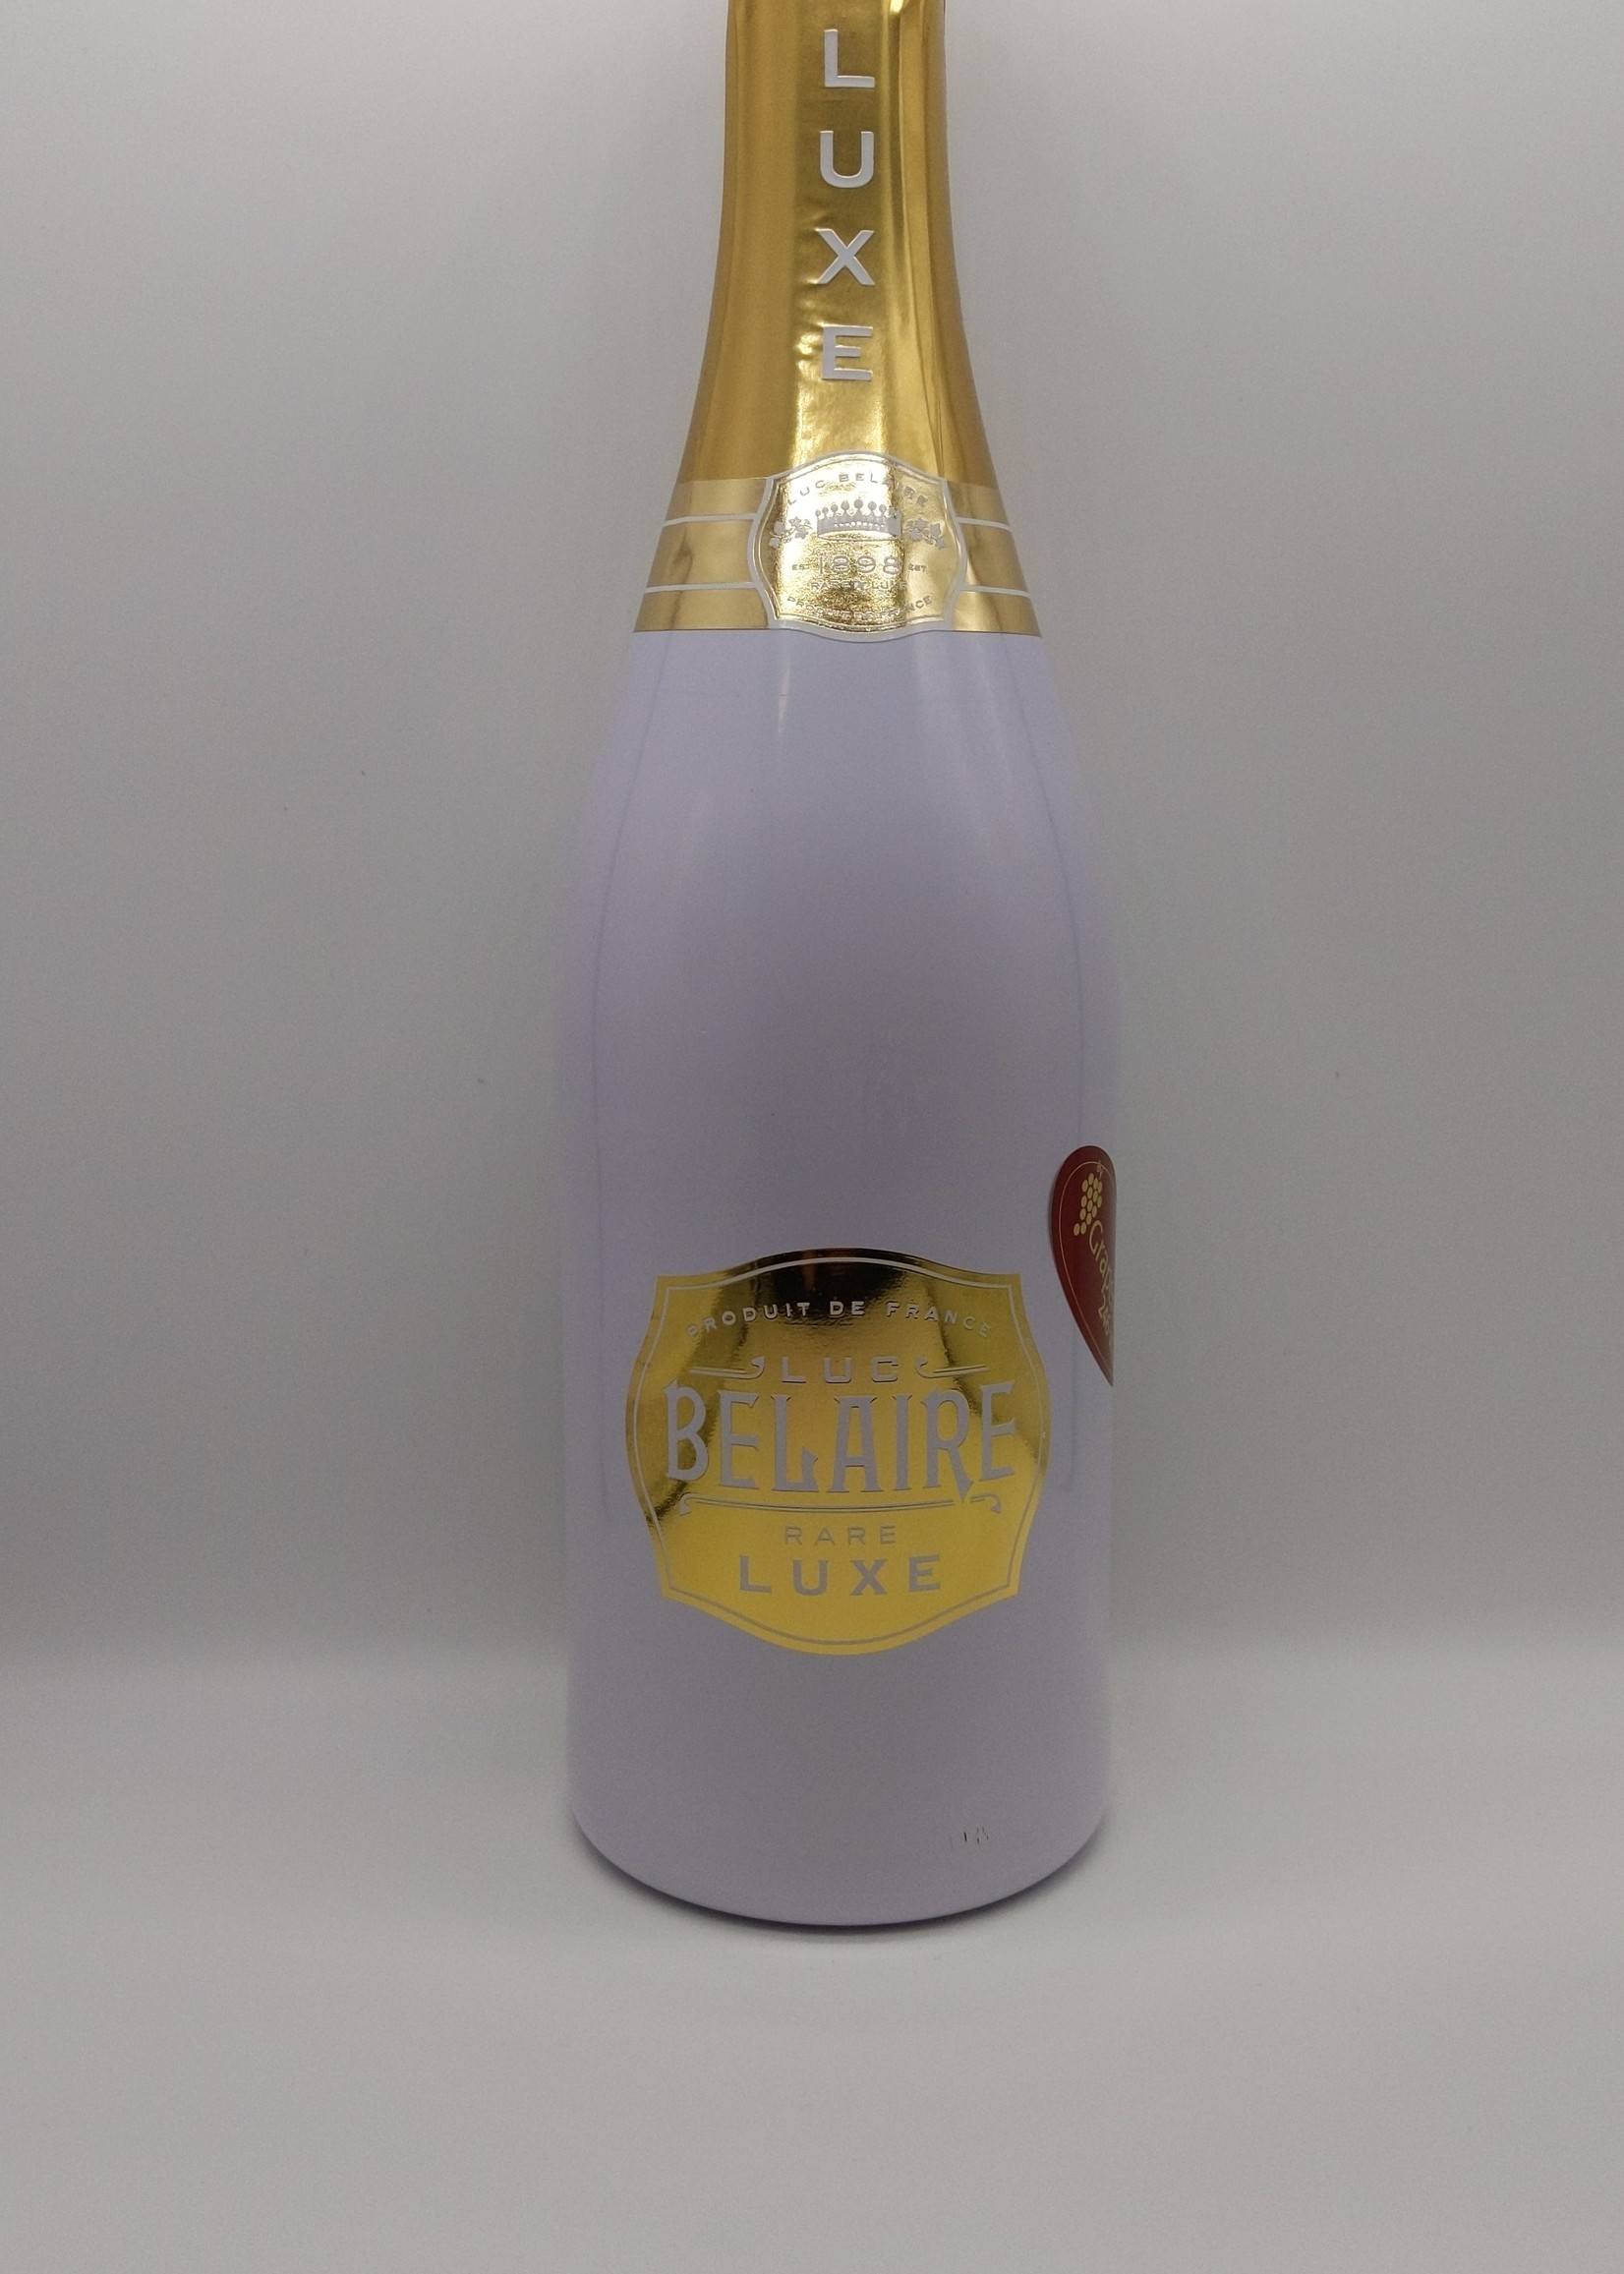 NV LUC BEL AIRE LUX 750ml